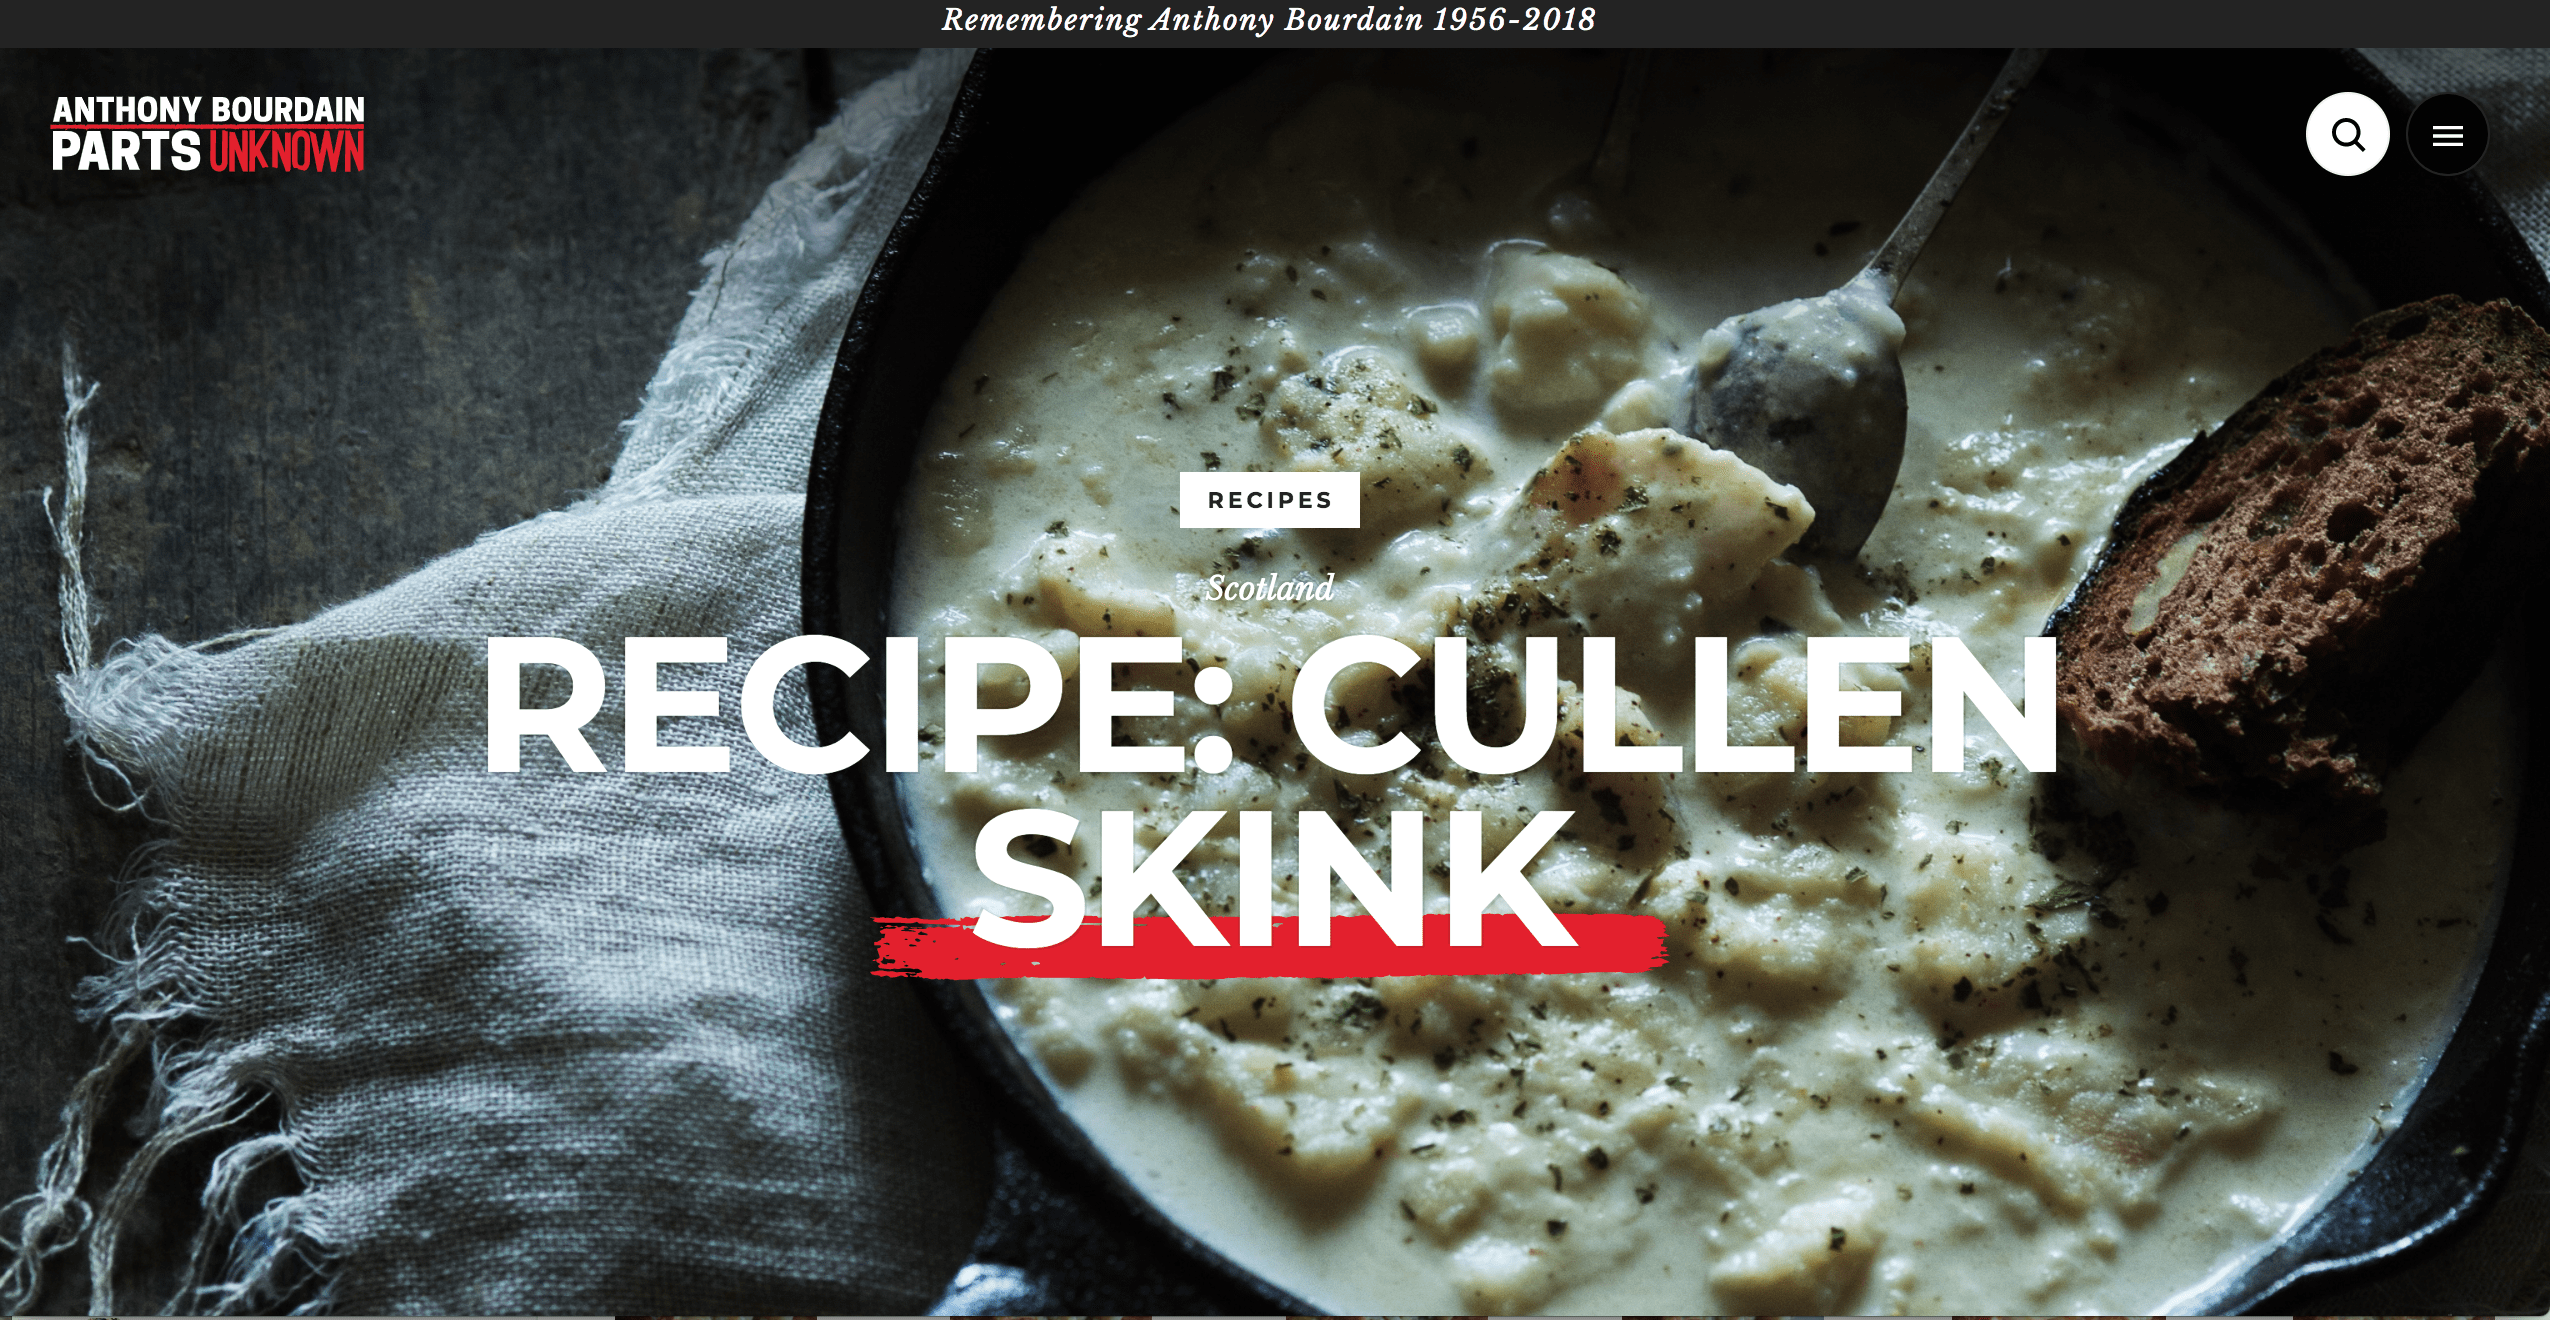 Parts Unknown cullen skink recipe page